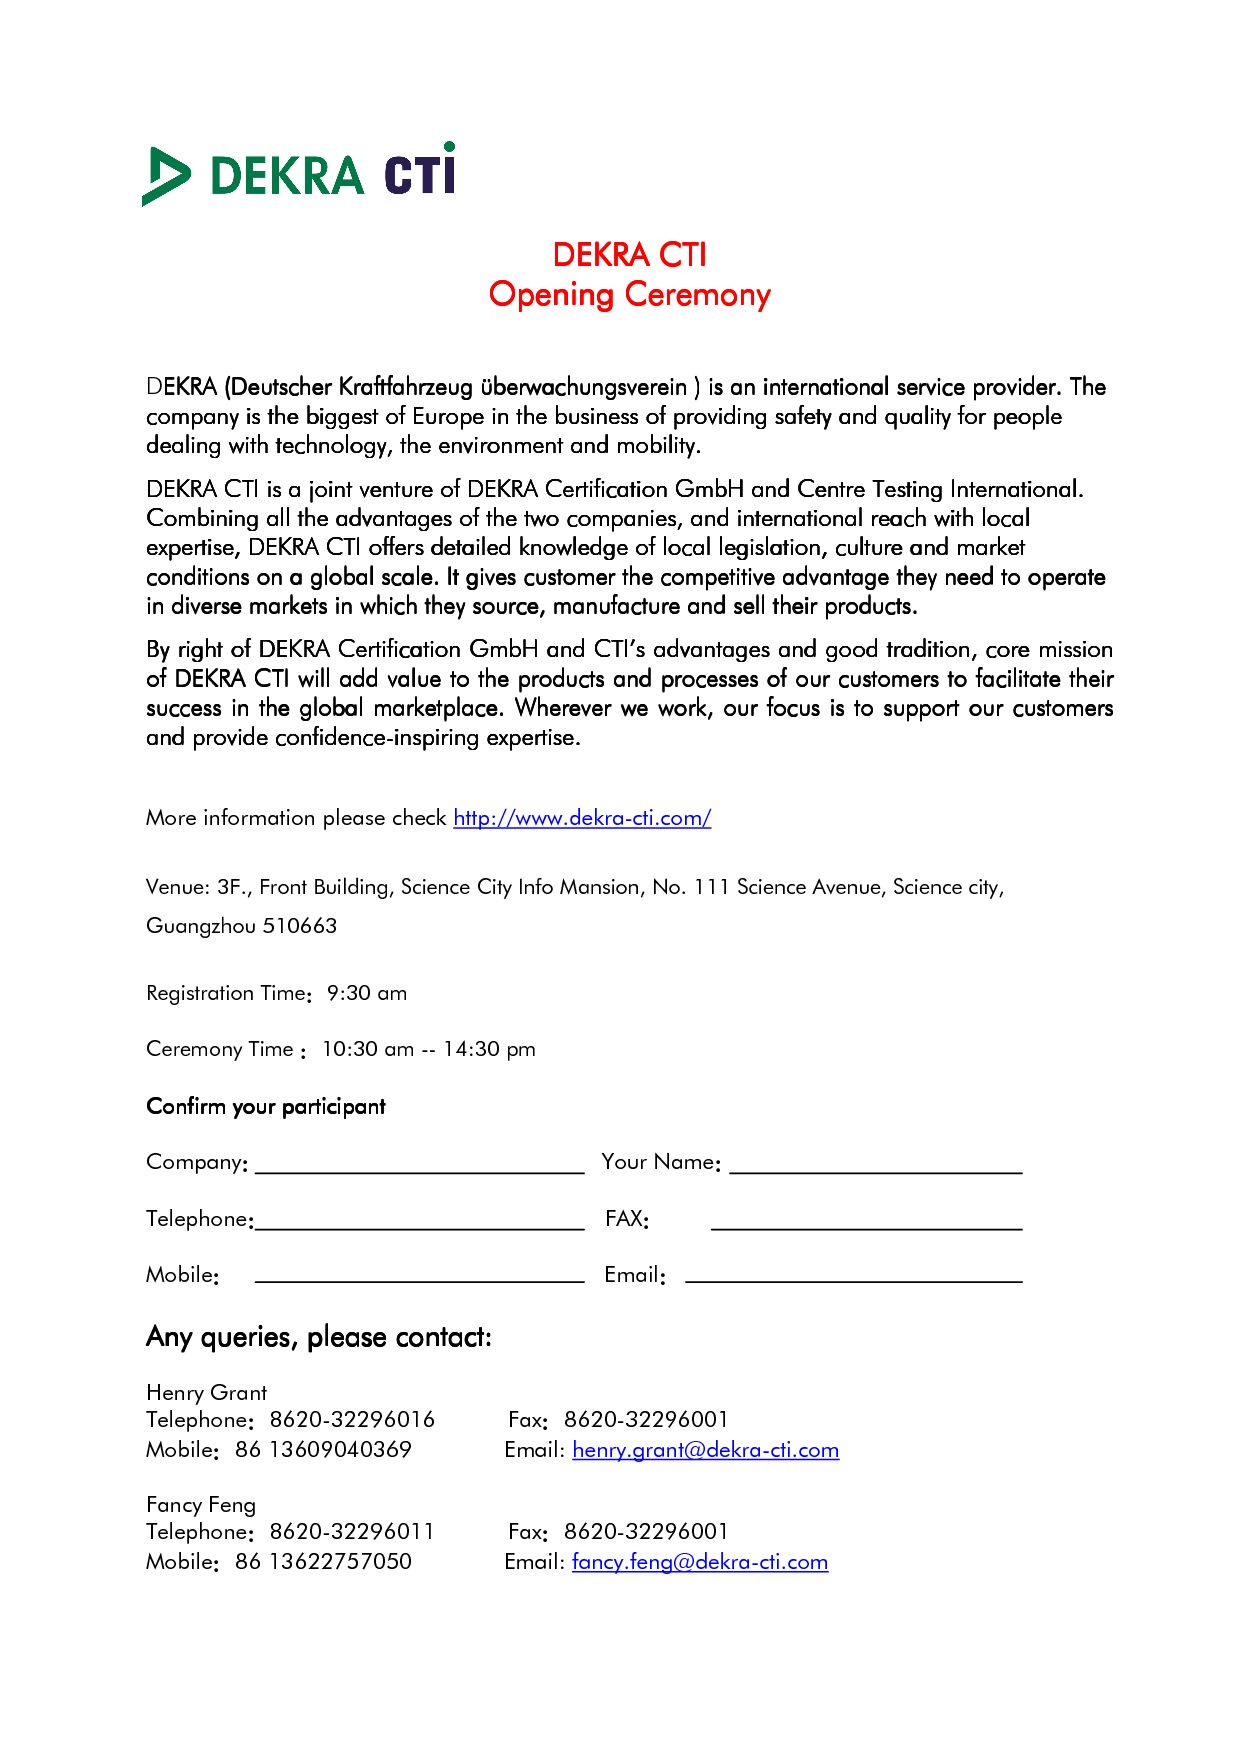 Invitation Email For New Office Opening Ceremony Invitation By Www